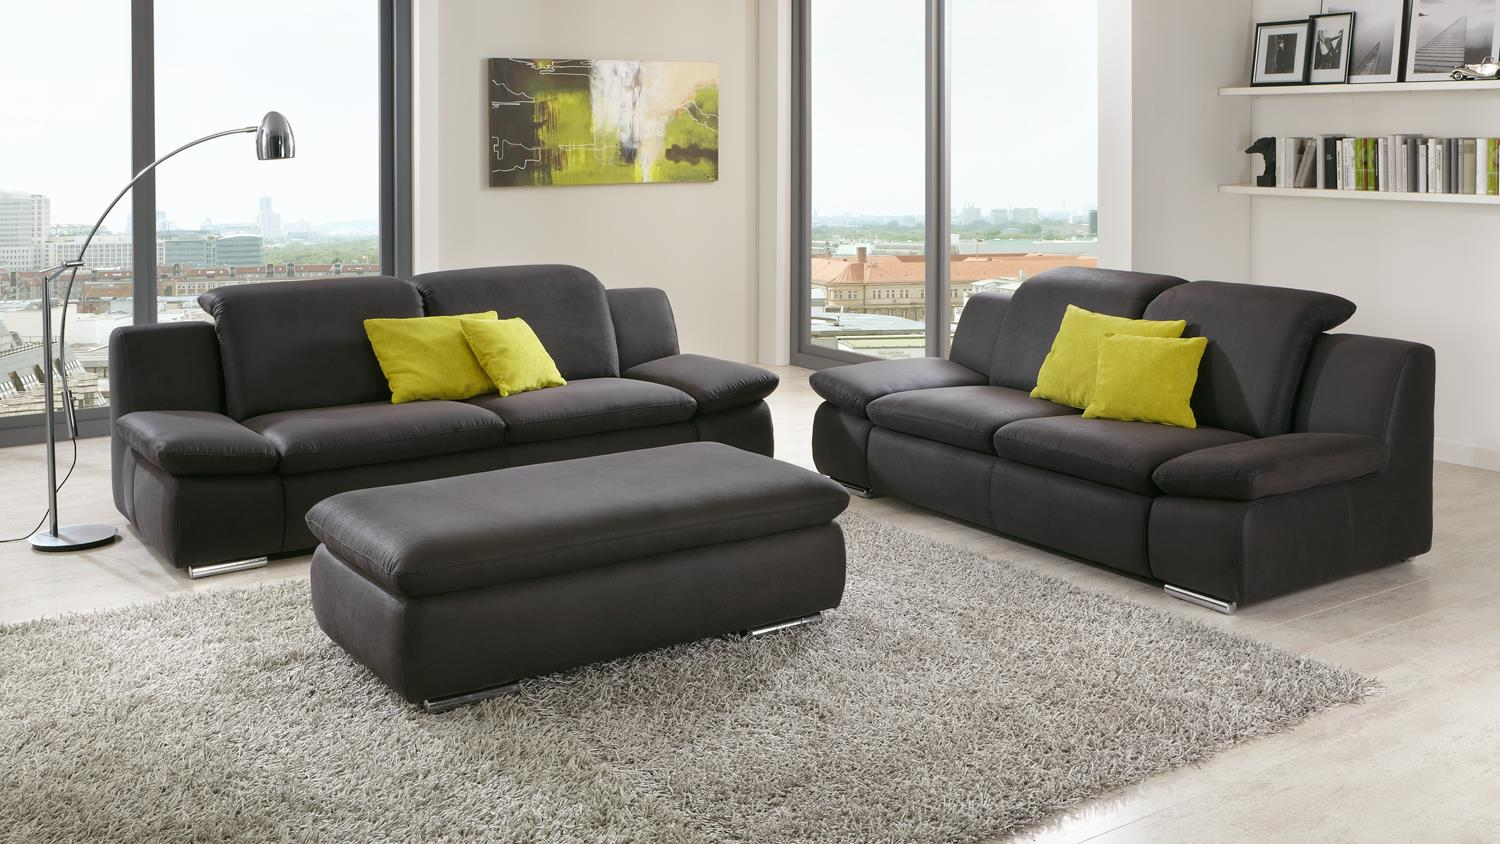 sofa isona 3 sitzer stoff anthrazit mit komfortfunktion. Black Bedroom Furniture Sets. Home Design Ideas